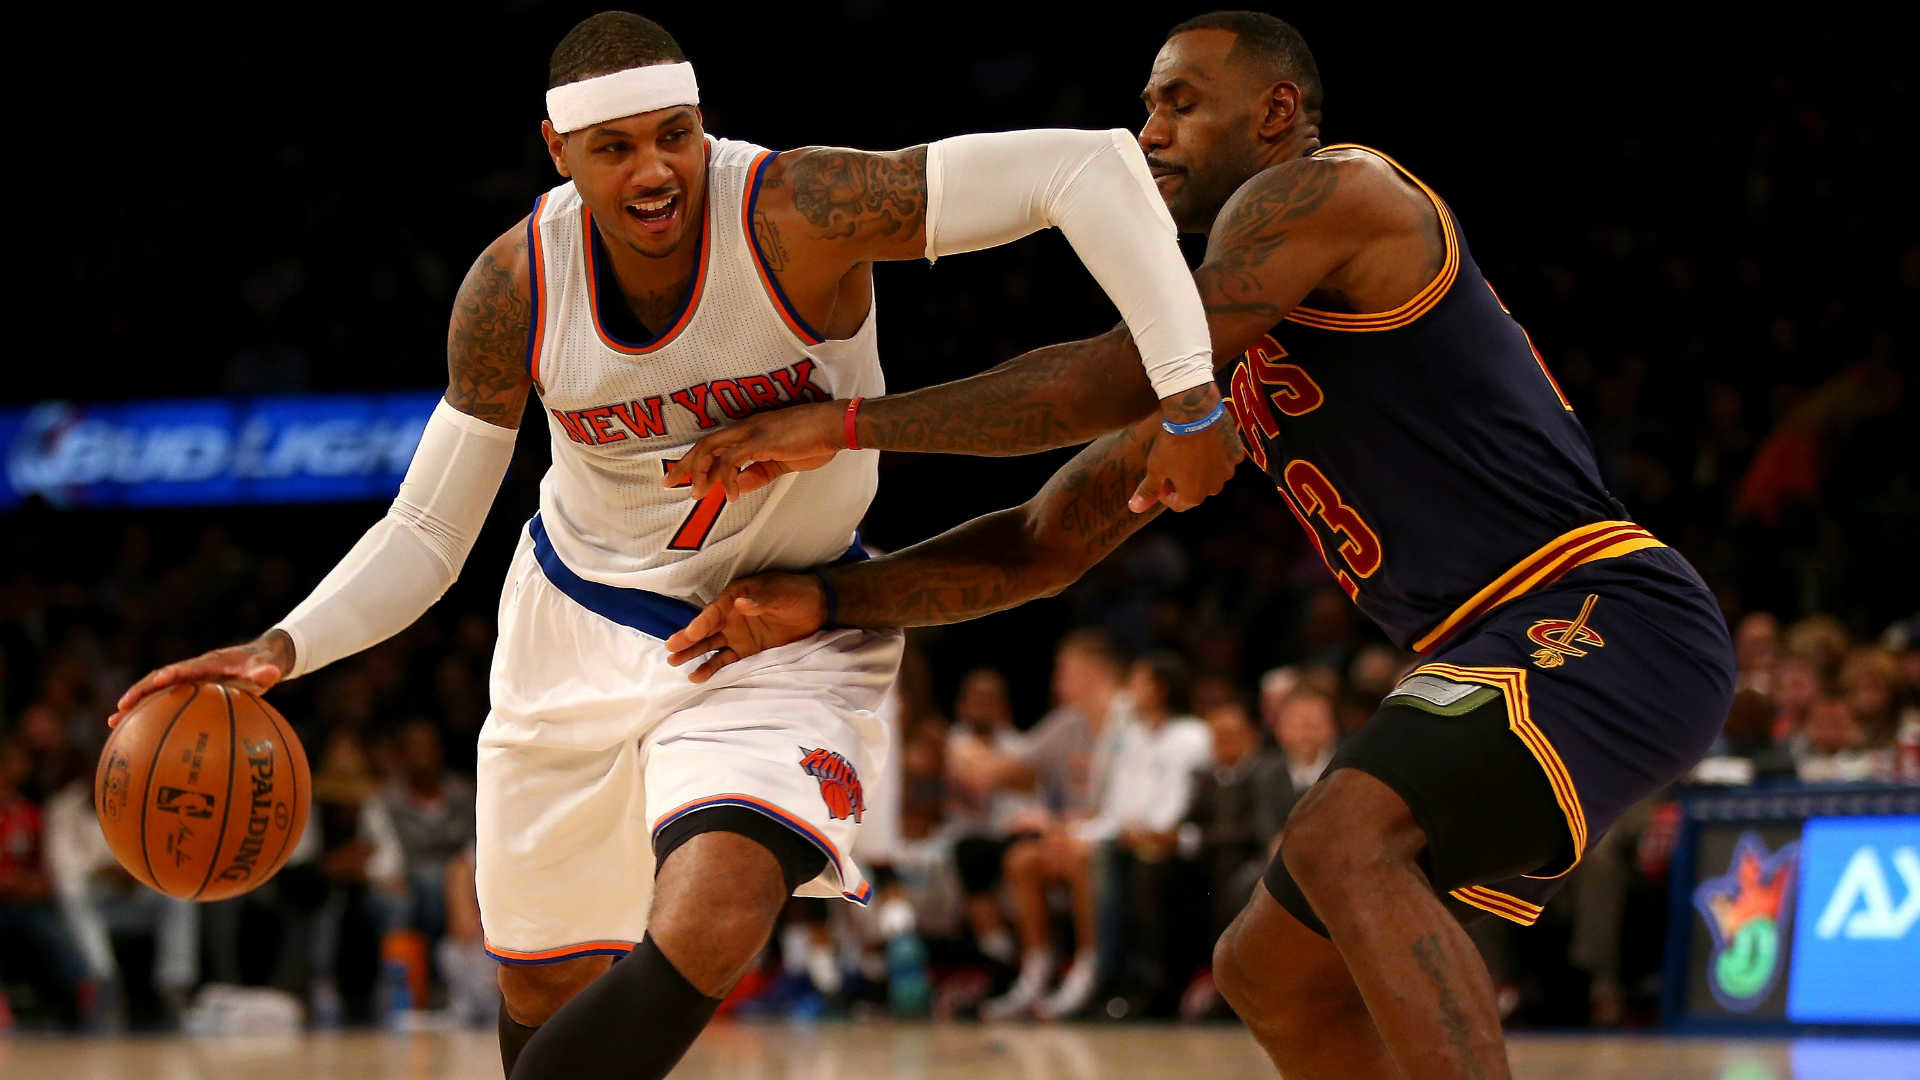 1920x1080 Cavaliers' LeBron James 'drama' is comical to Carmelo Anthony | NBA |  Sporting News